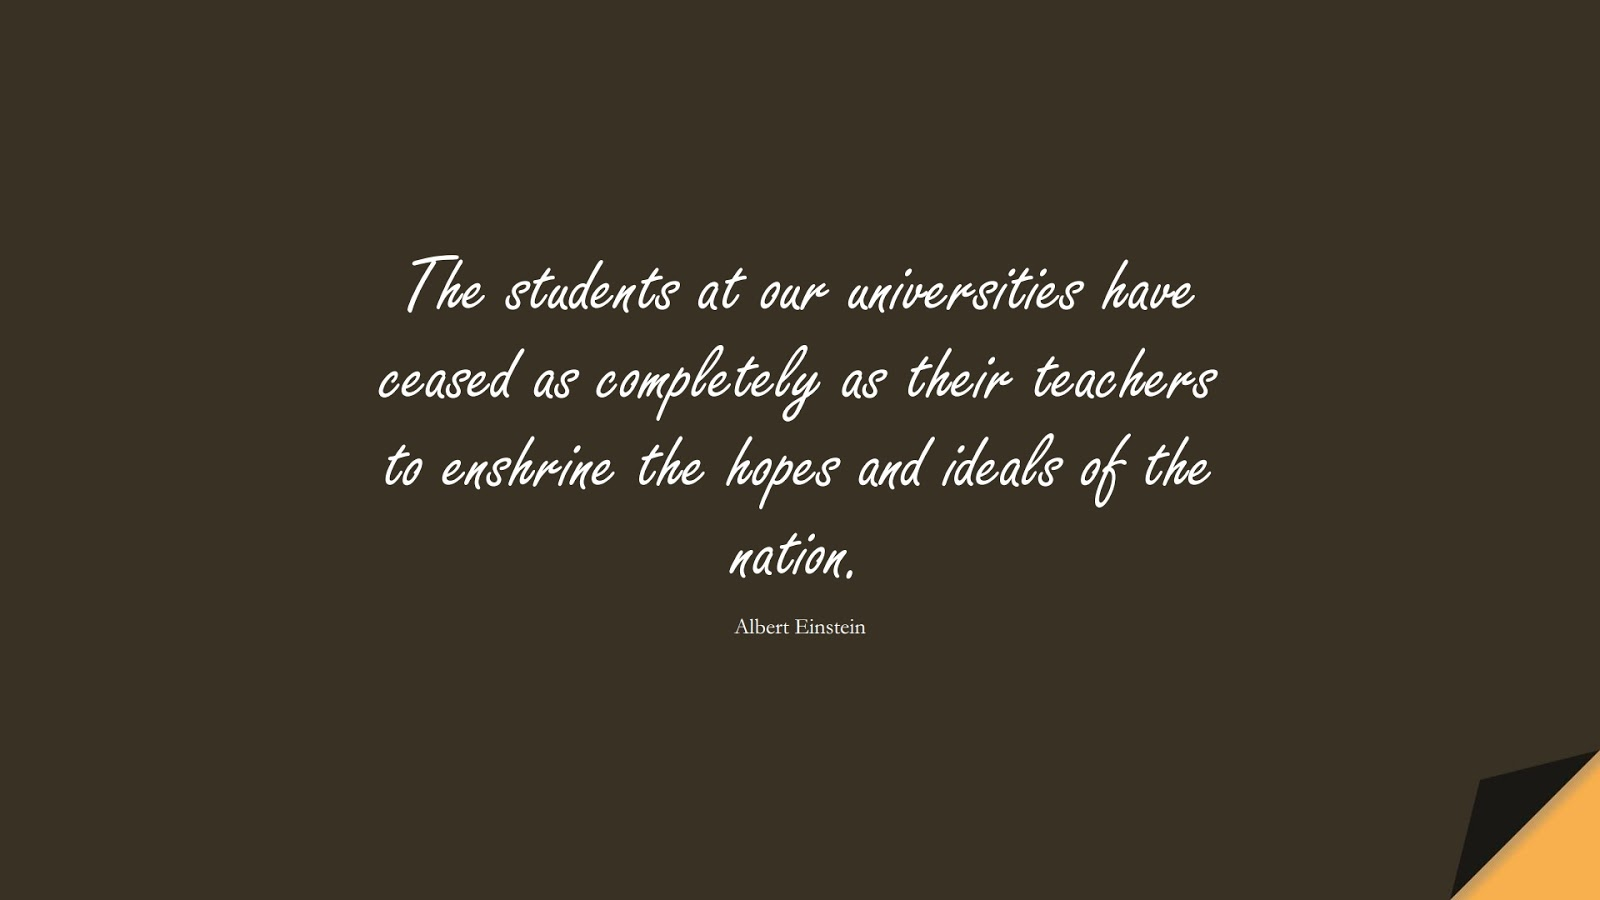 The students at our universities have ceased as completely as their teachers to enshrine the hopes and ideals of the nation. (Albert Einstein);  #AlbertEnsteinQuotes